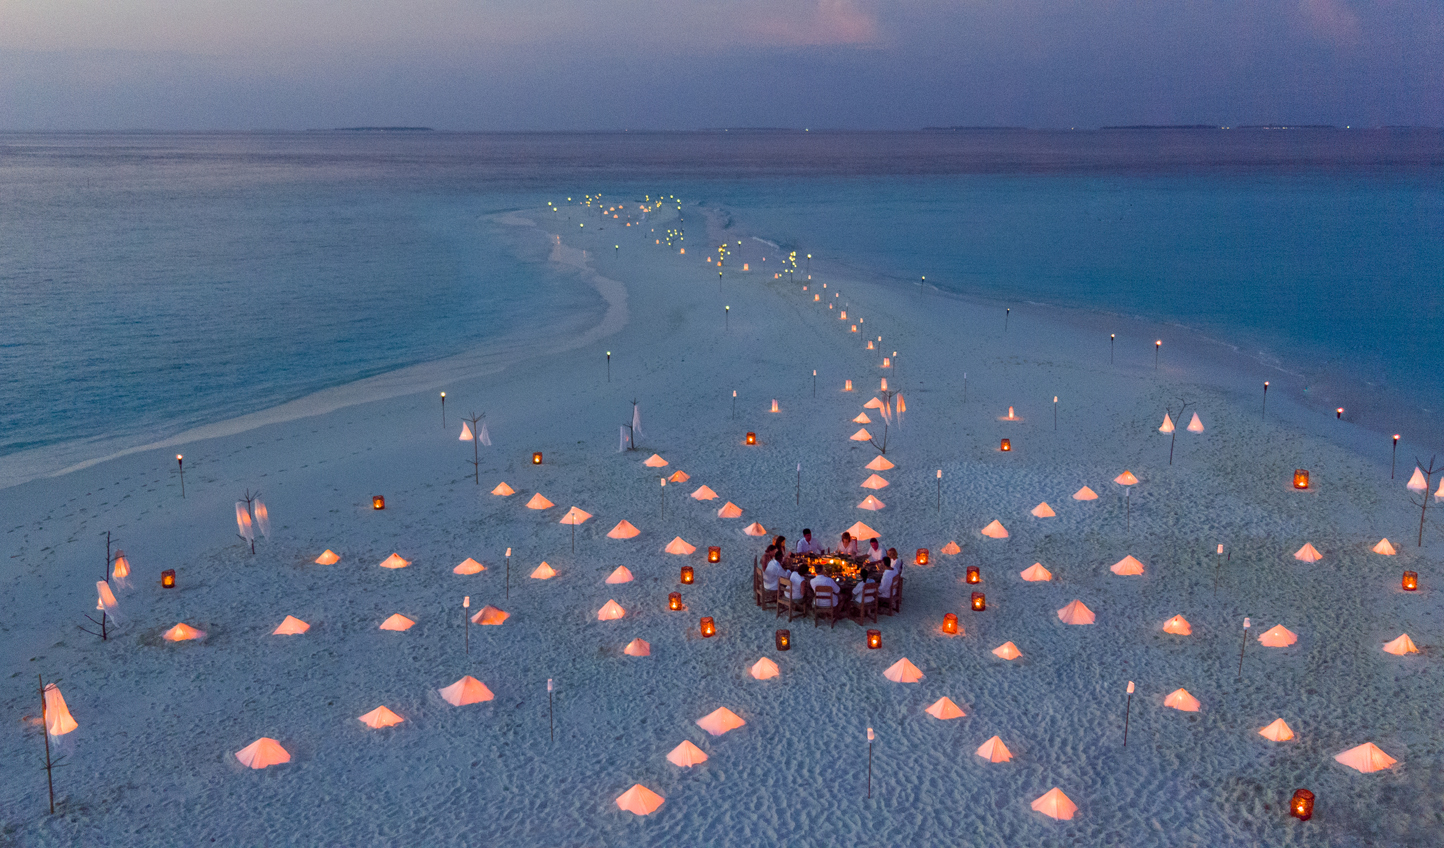 With just the stars and the sea for company, dine in total privacy on a sandbank